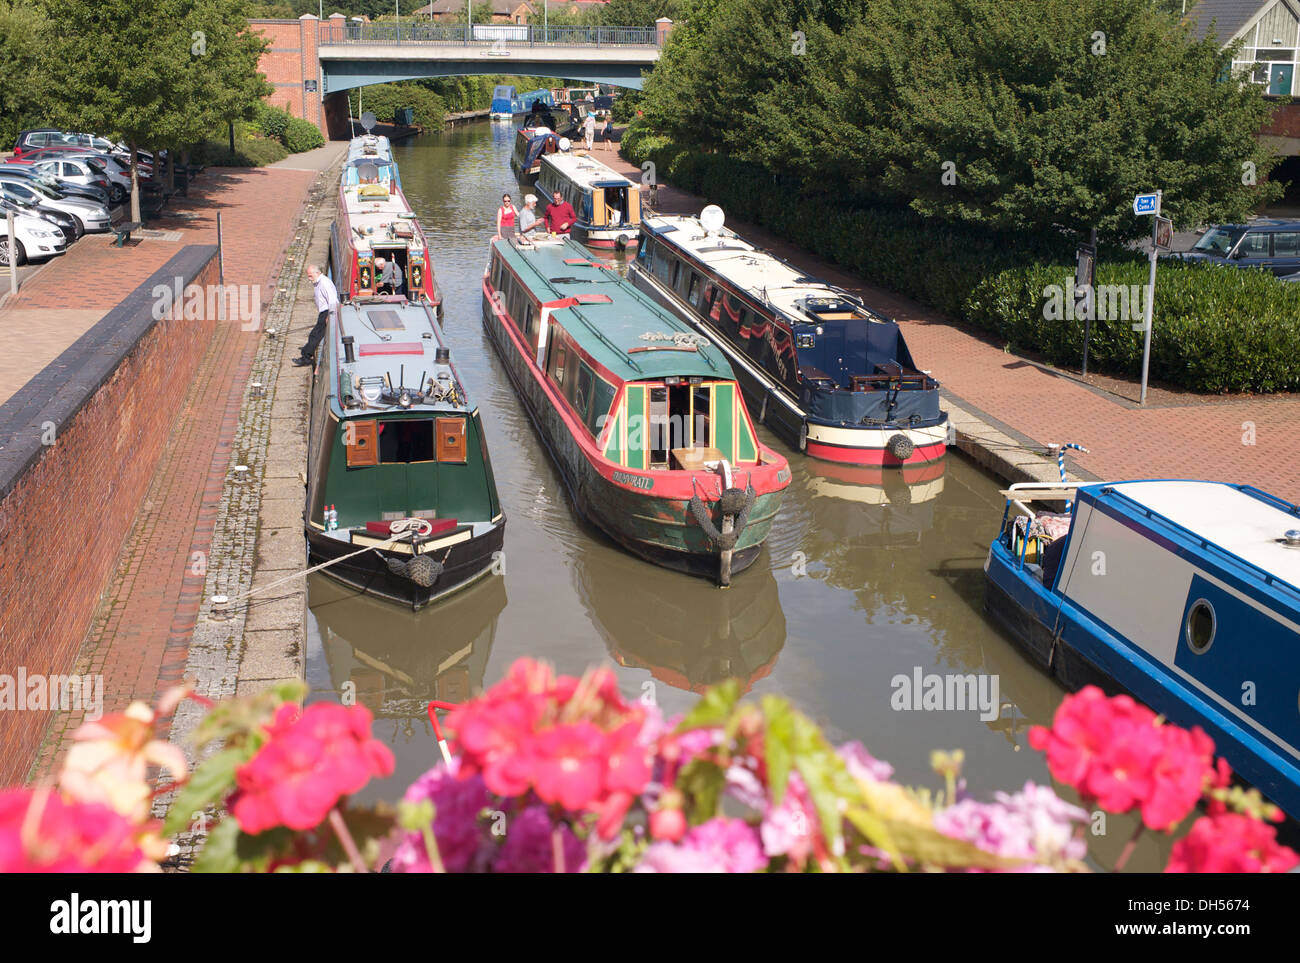 Canal boats on the Oxford Canal near Castle Quay Shopping Centre, Banbury, Oxfordshire. - Stock Image